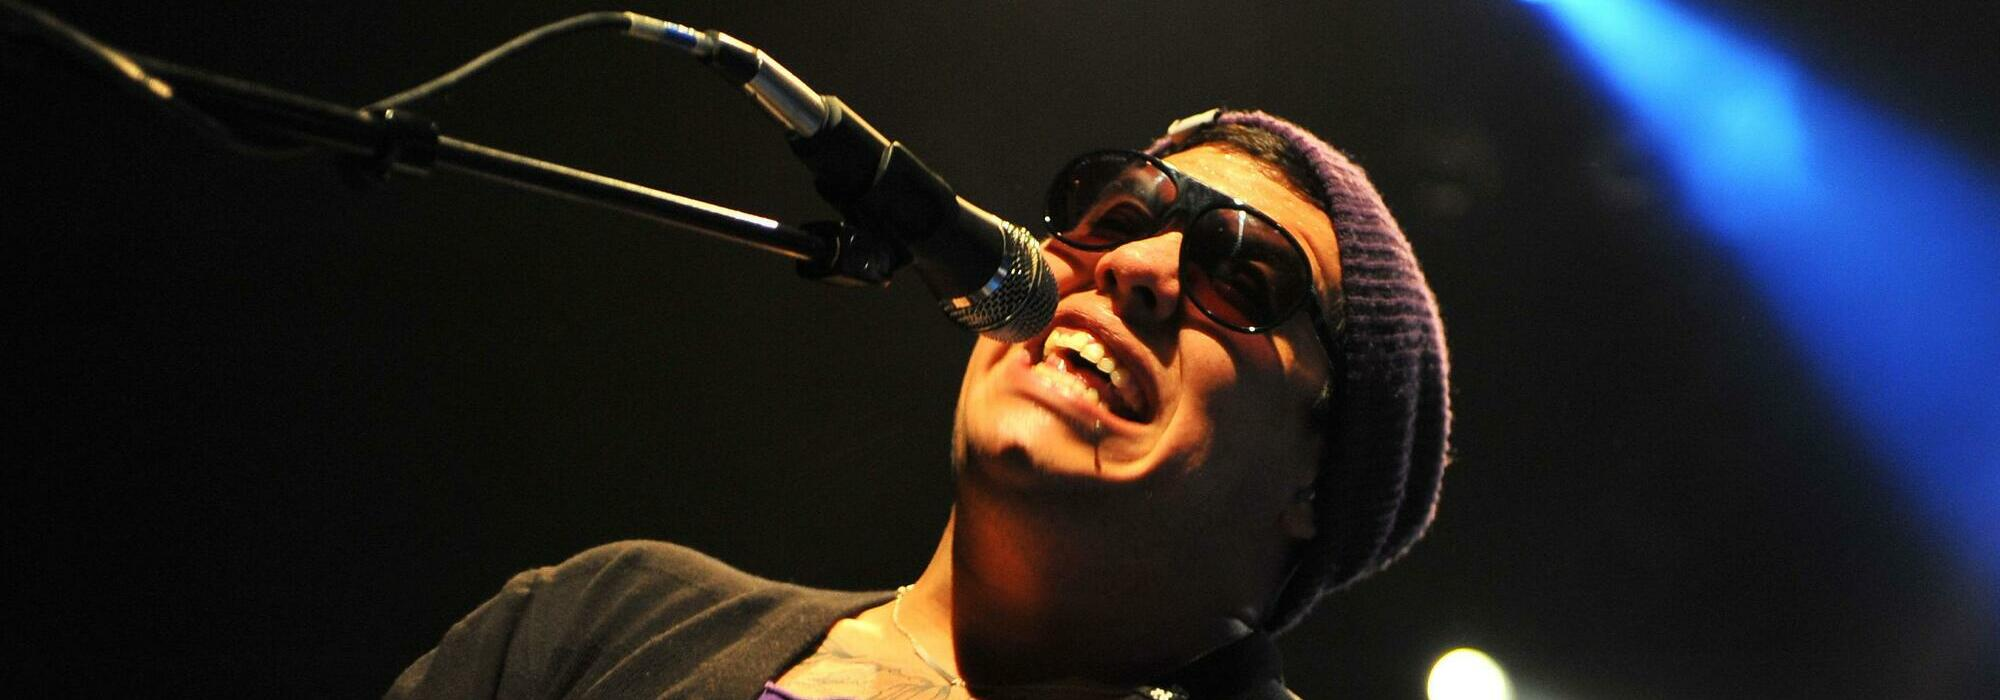 A Sublime With Rome live event